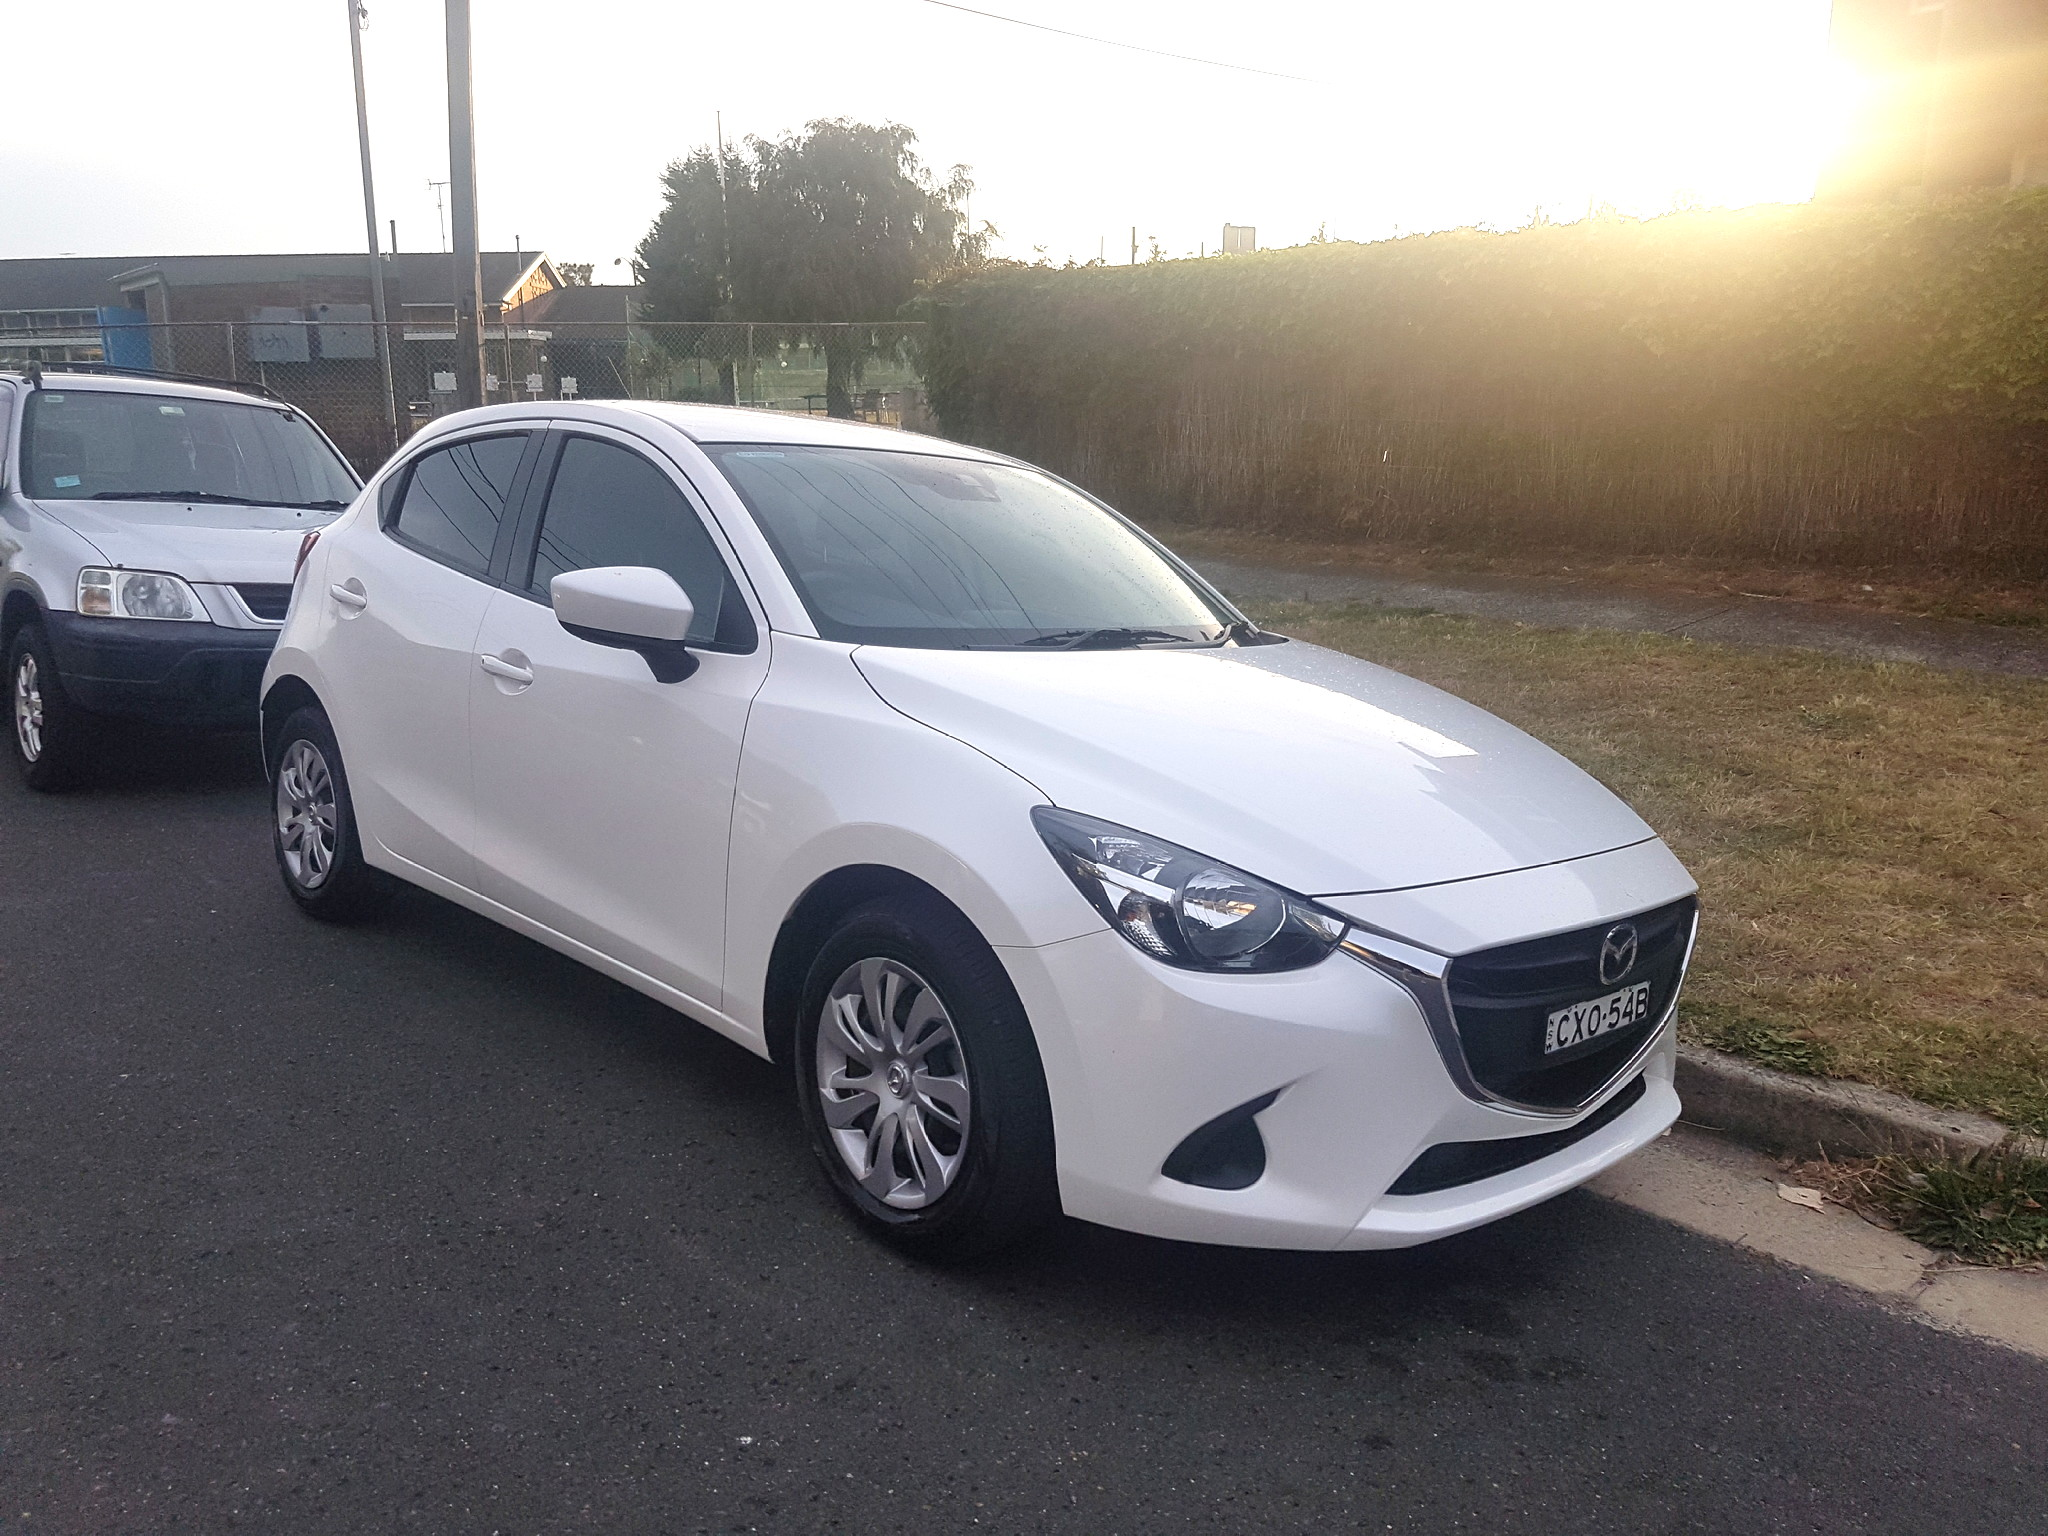 Picture of Tiffany's 2014 Mazda 2